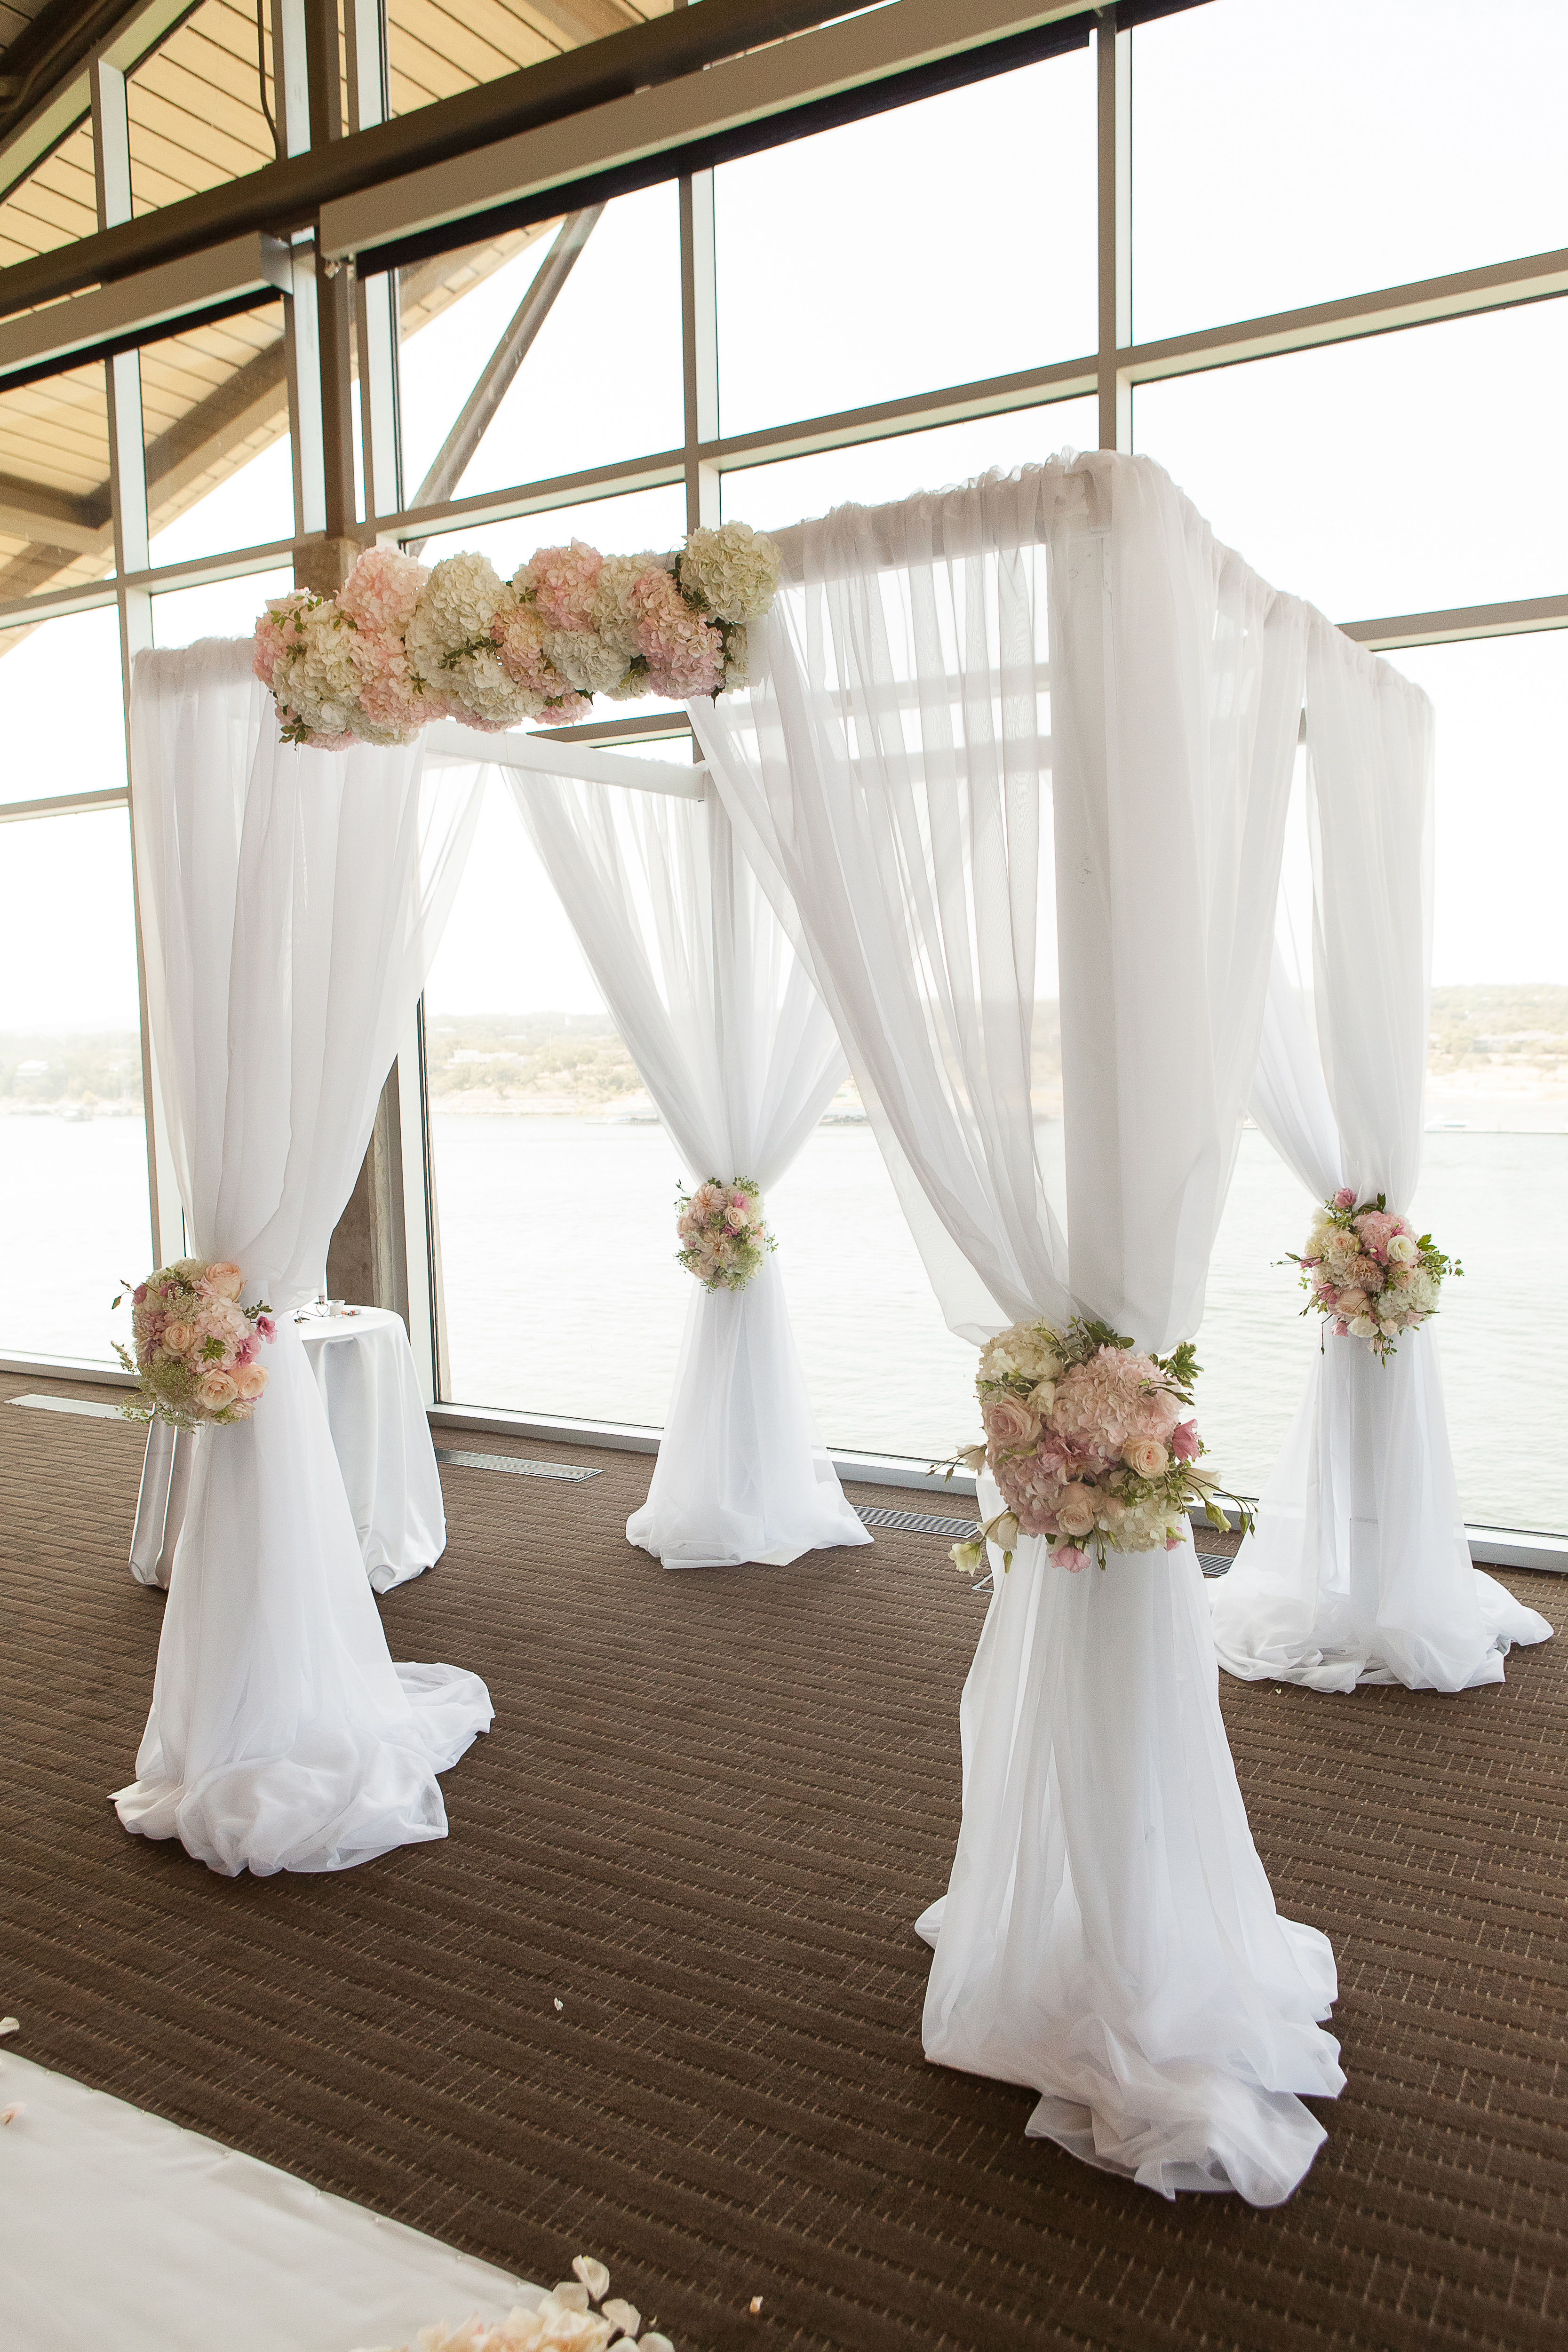 ... 3333 × 5000 in White draped canopy for indoor ceremony. & White draped canopy for indoor ceremony. | Bouquets of Austin